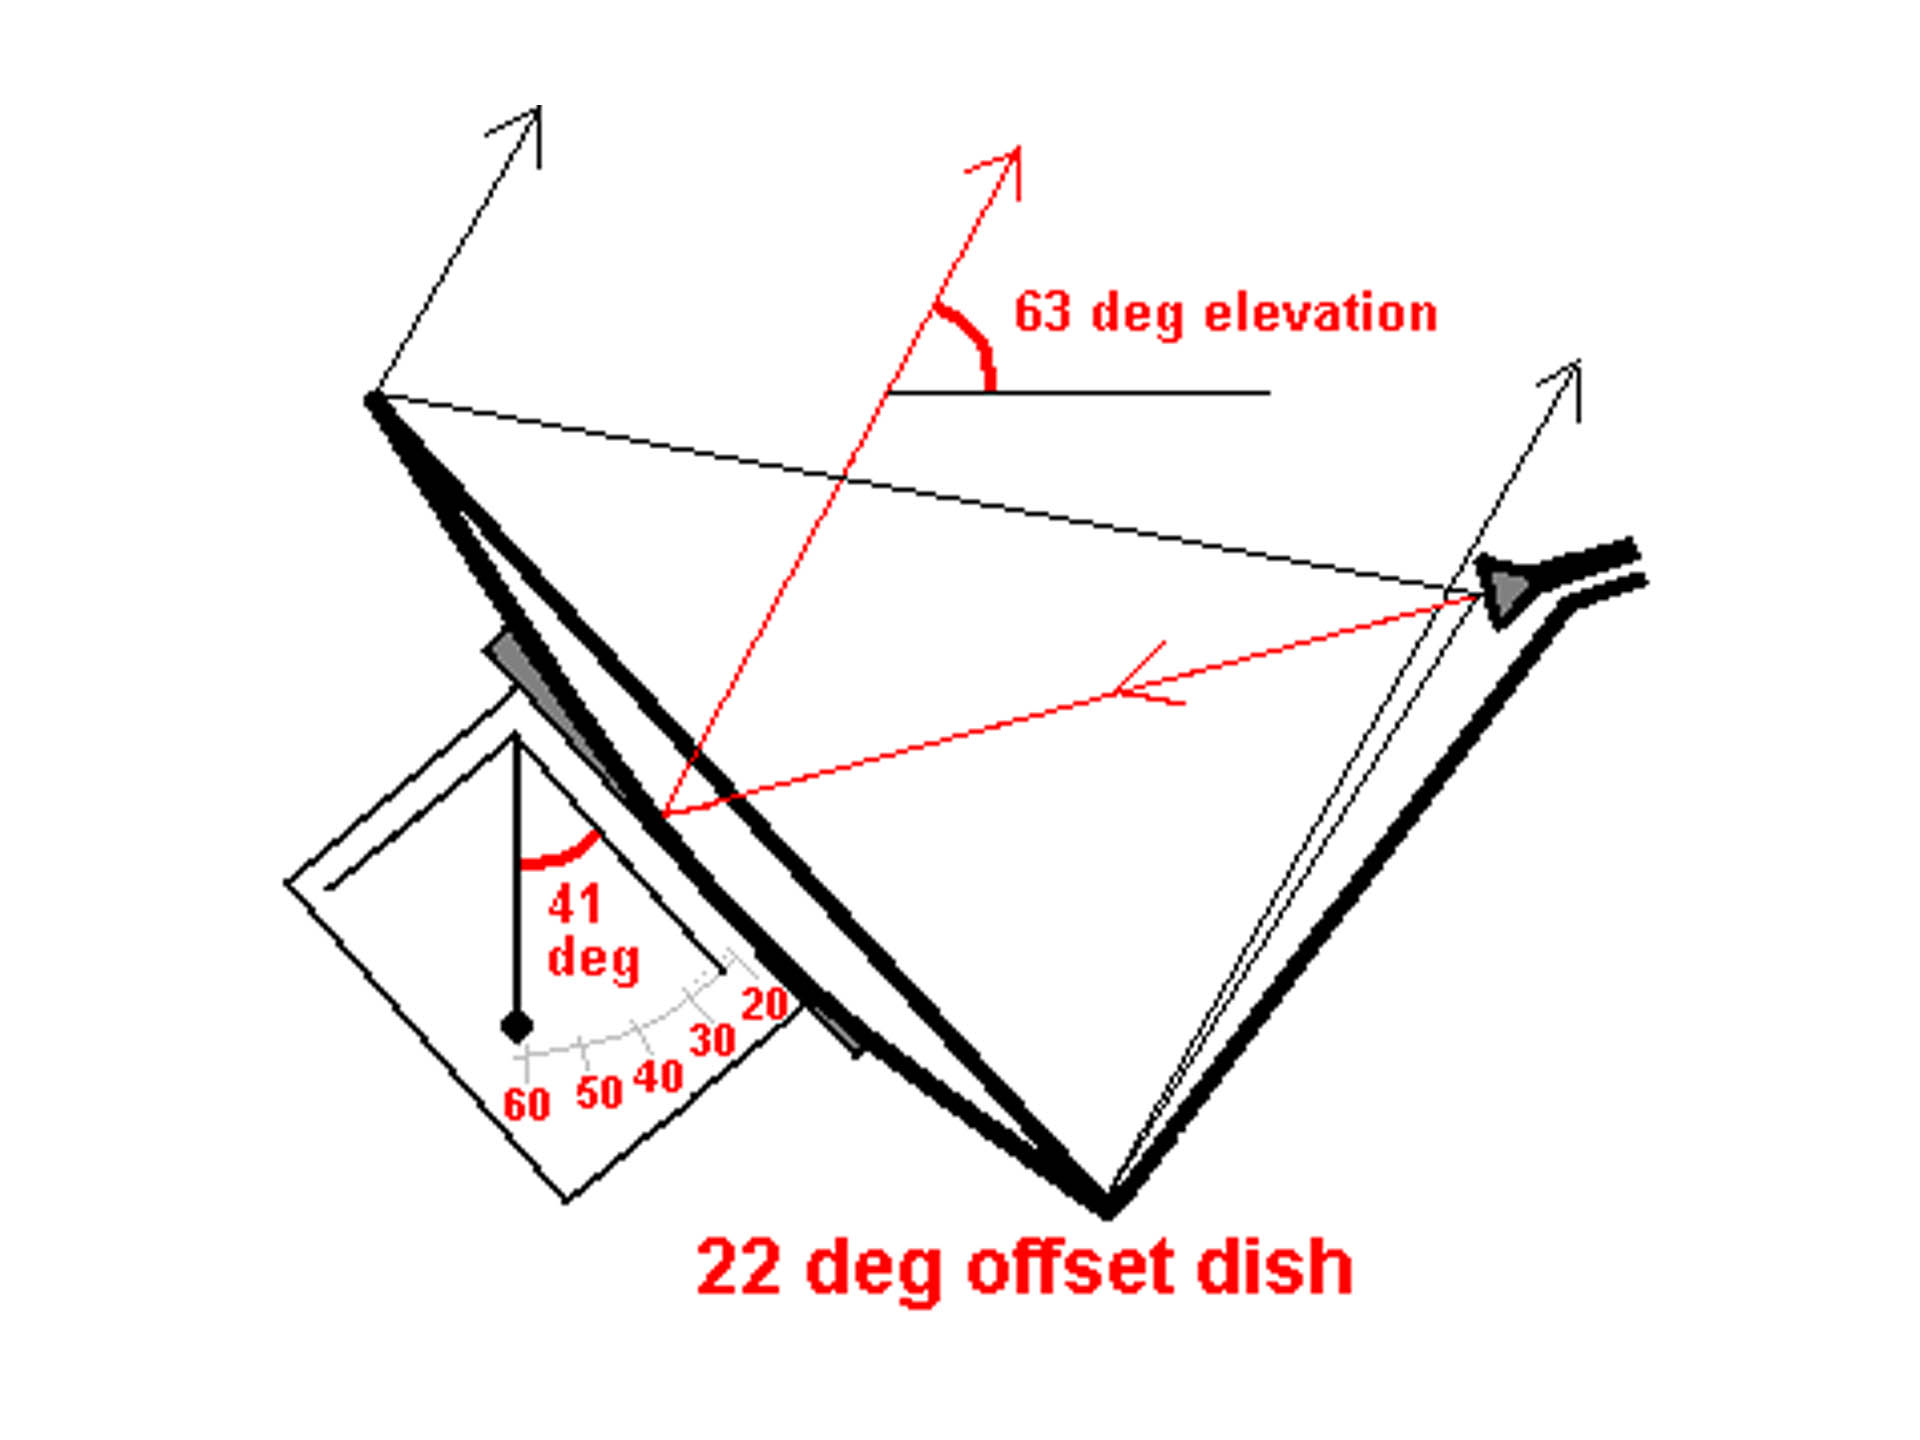 Drawing of 22 degree offset dish alignment for 10 GHz Amateur Radio